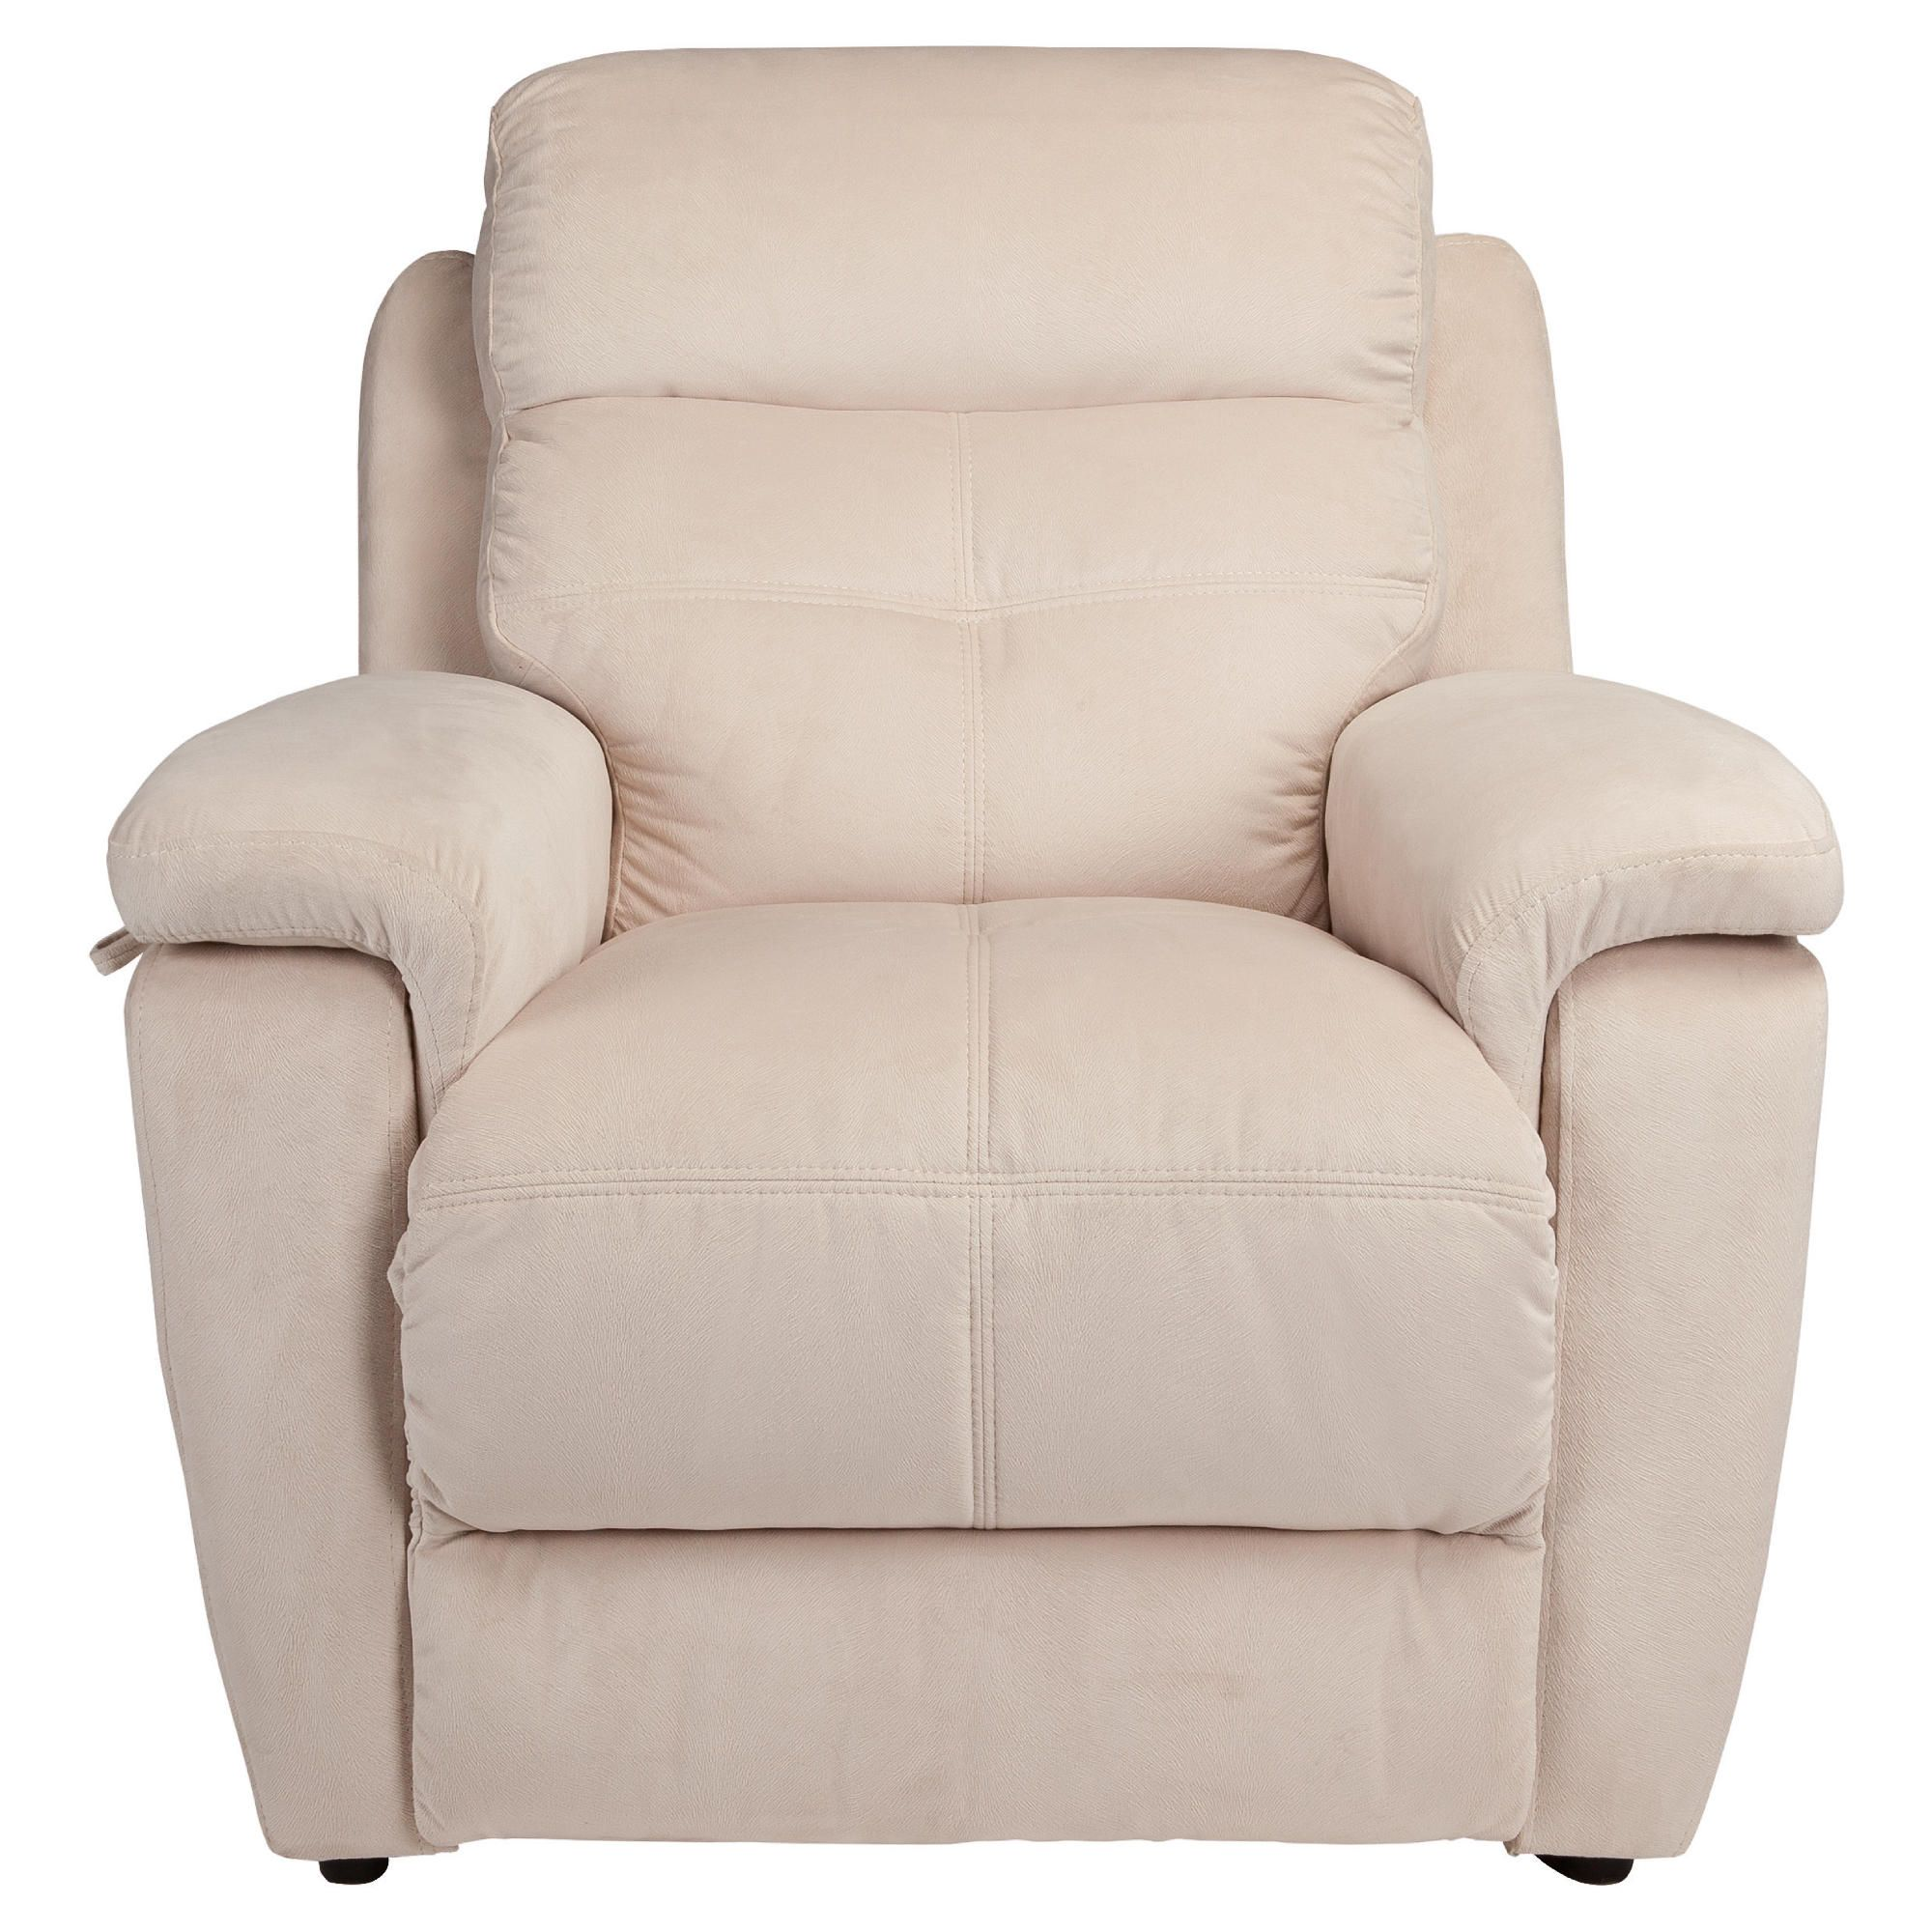 Fabric Power Lift Recliner Chair Natural at Tesco Direct